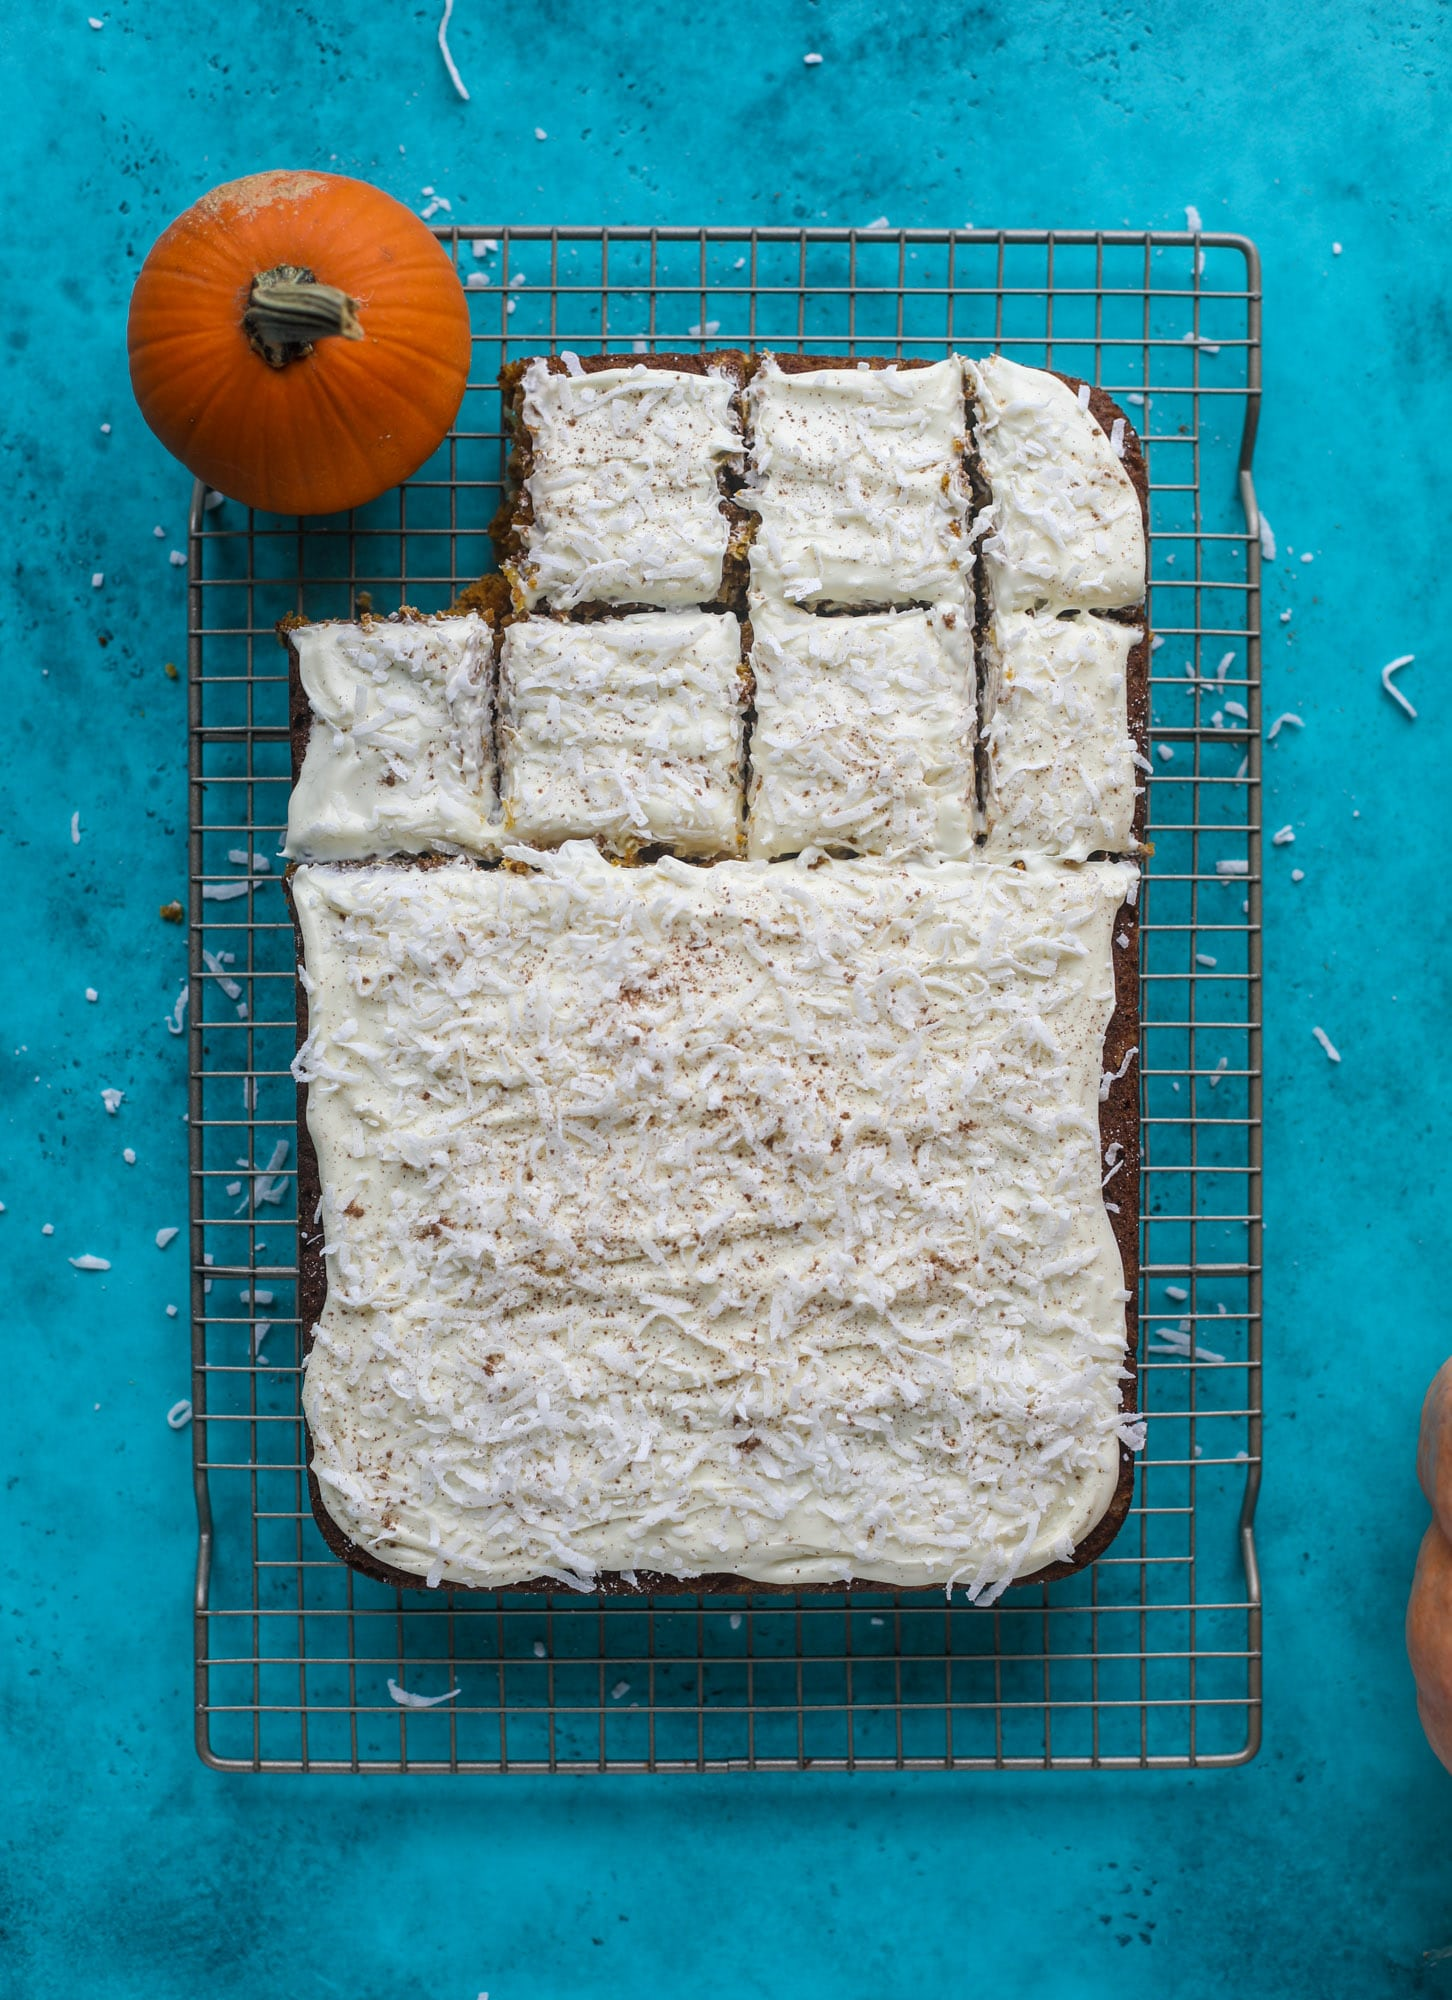 This pumpkin coconut cake is super tender and delicious and comes together quickly in a baking dish! It's spiced for the season and covered in a fluffy coconut cream cheese frosting. You can made it ahead of time for a crowd and it's a huge hit! I howsweeteats.com #pumpkin #cake